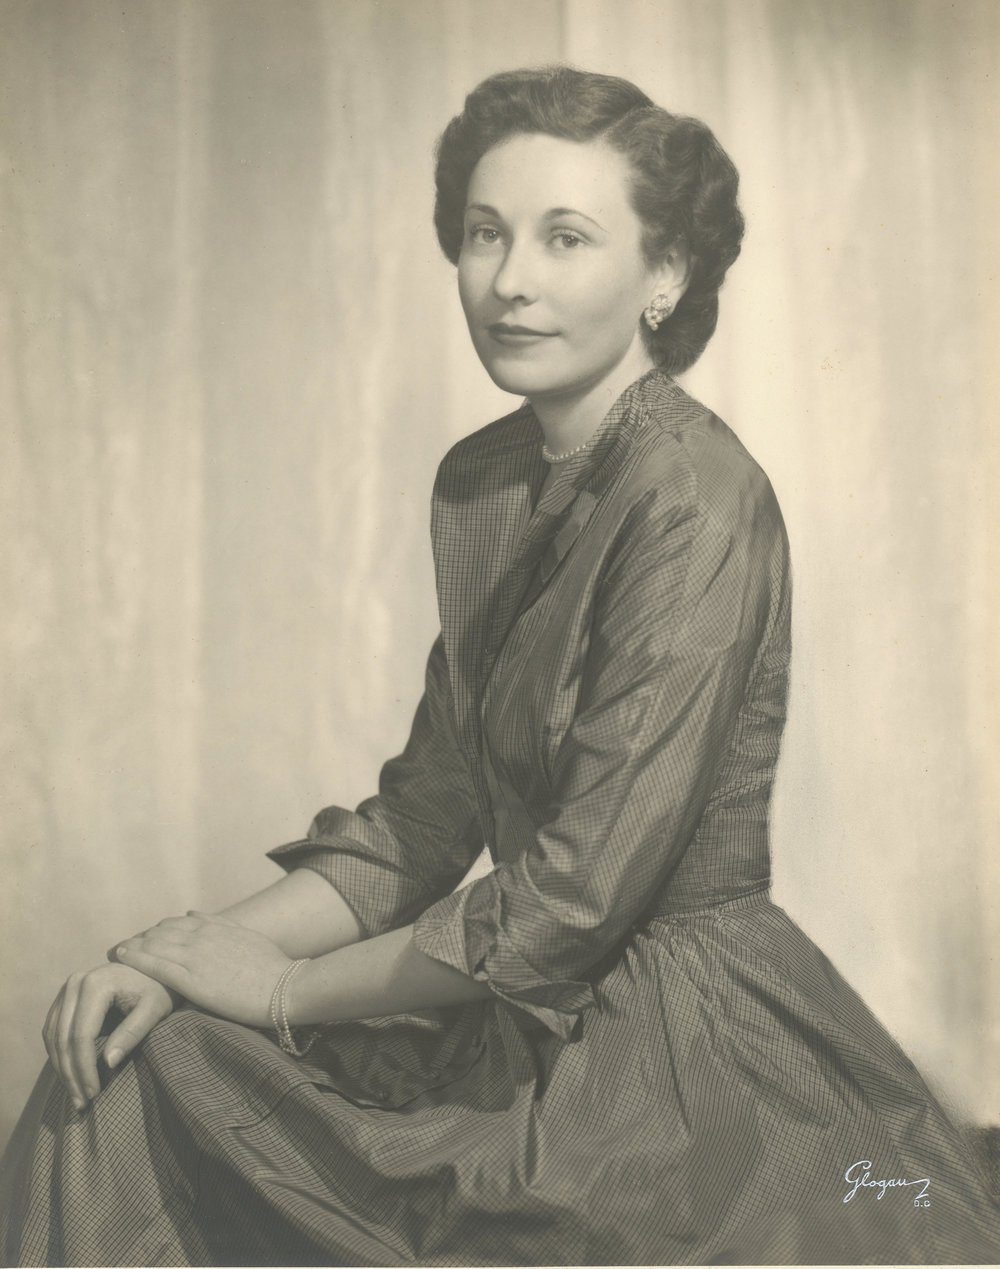 Photo taken in 1950, provided by Virginia Rhine Stein.